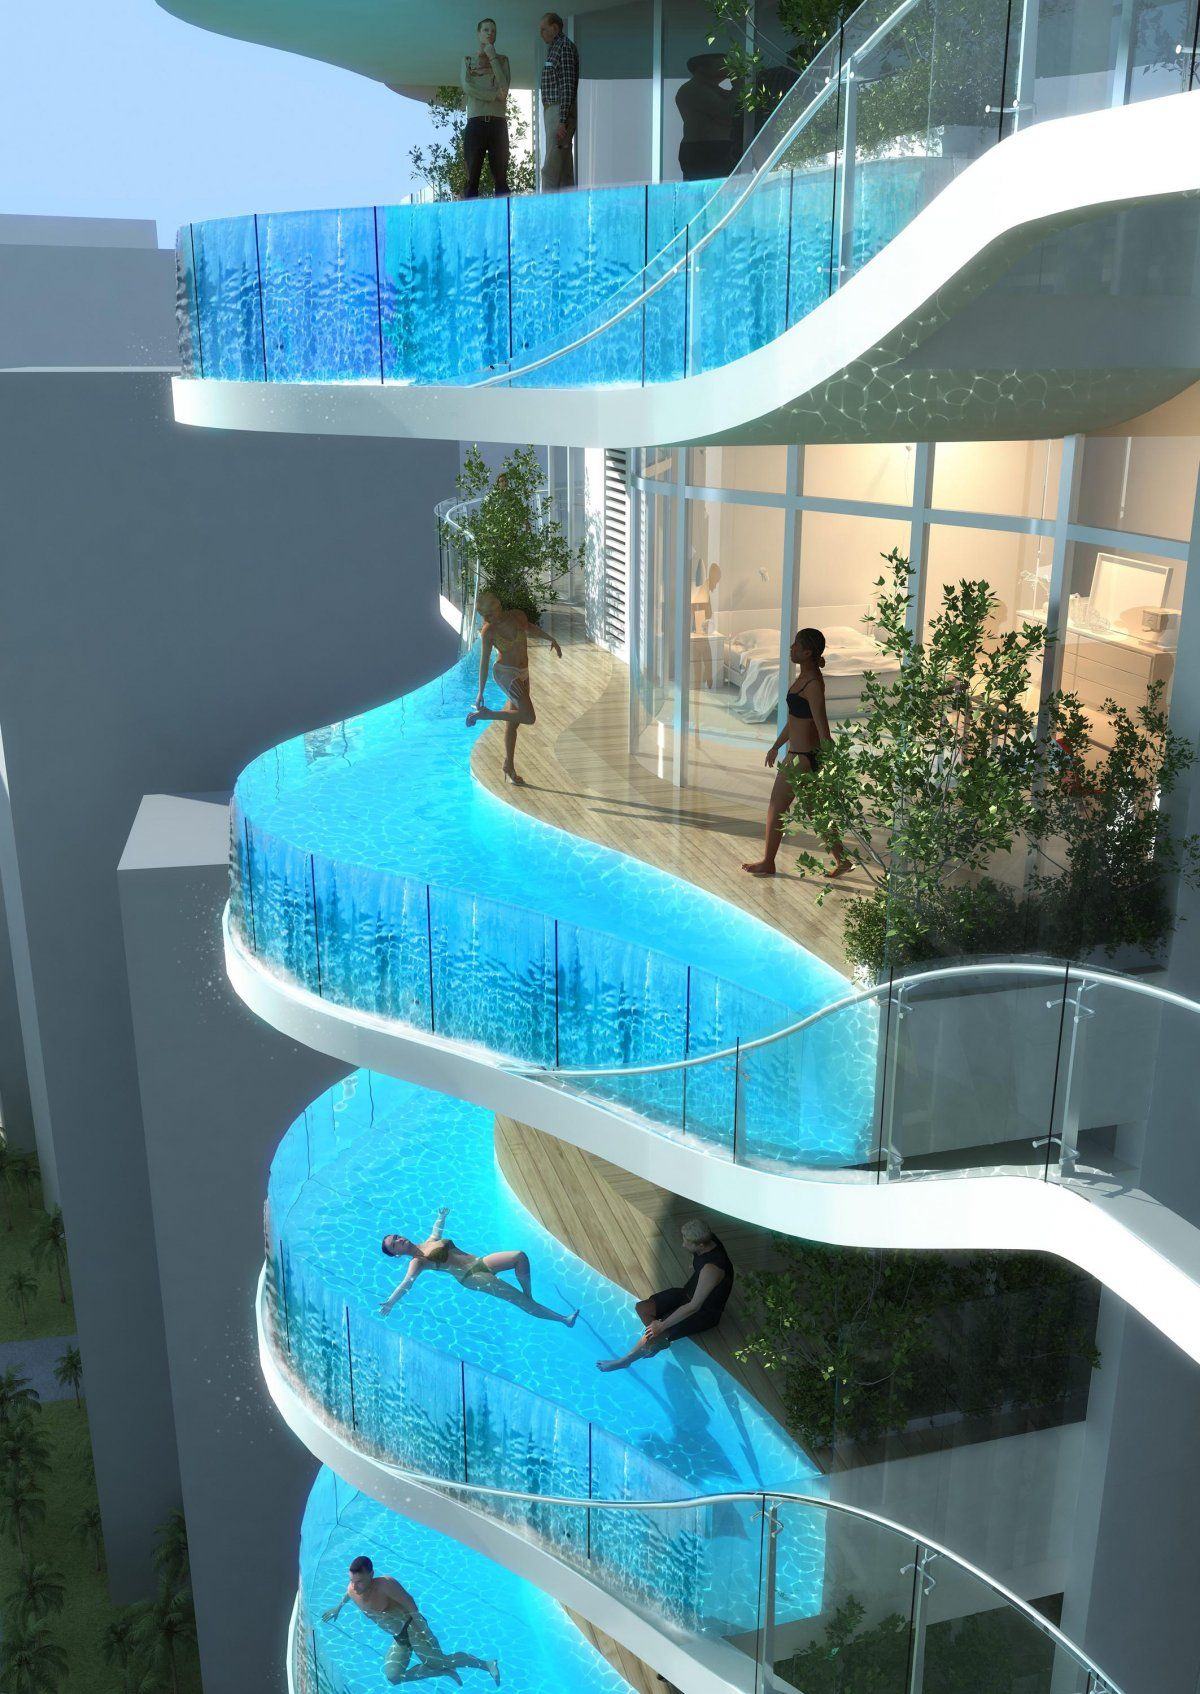 Luxury Apartments Pool. Whoa  These Luxury Condos Have a Private Pool on Every Balcony